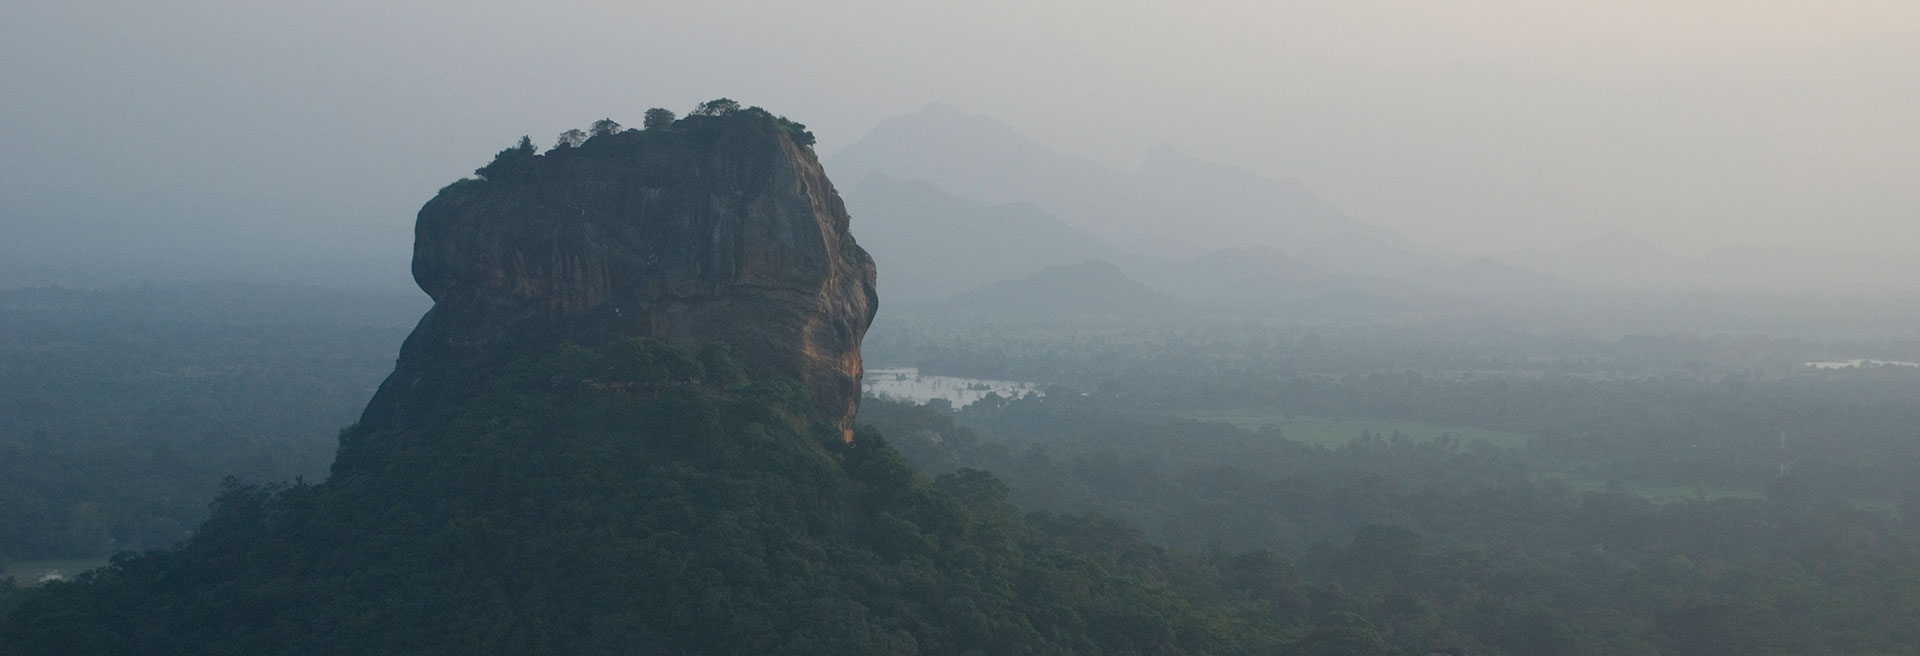 Sigiriya World Heritage Site